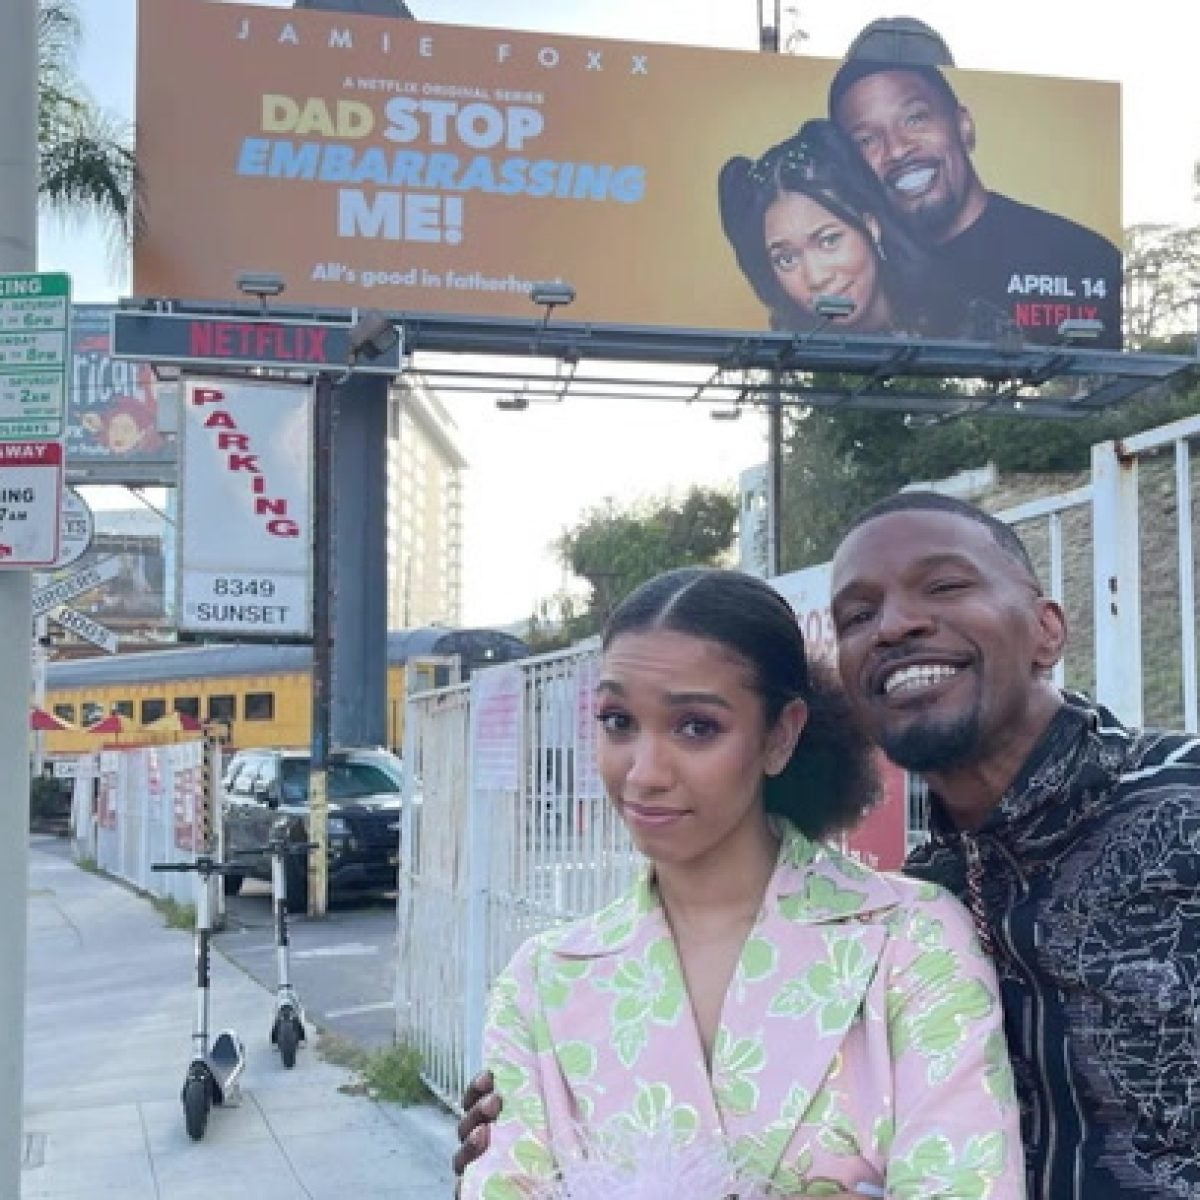 Jamie Foxx Discusses Dealing With Professional Disappointment